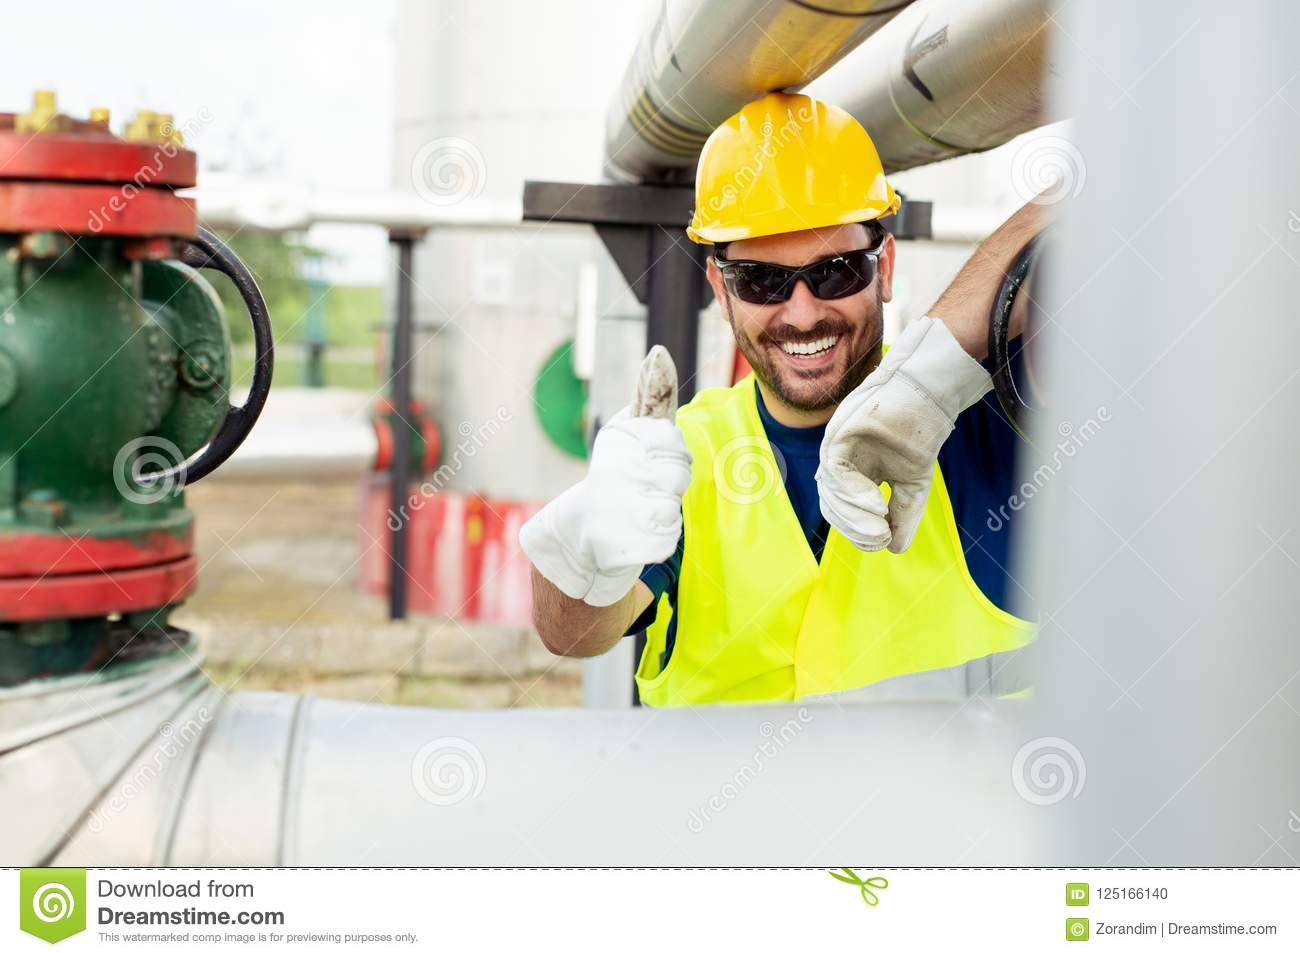 Oil and gas engineer